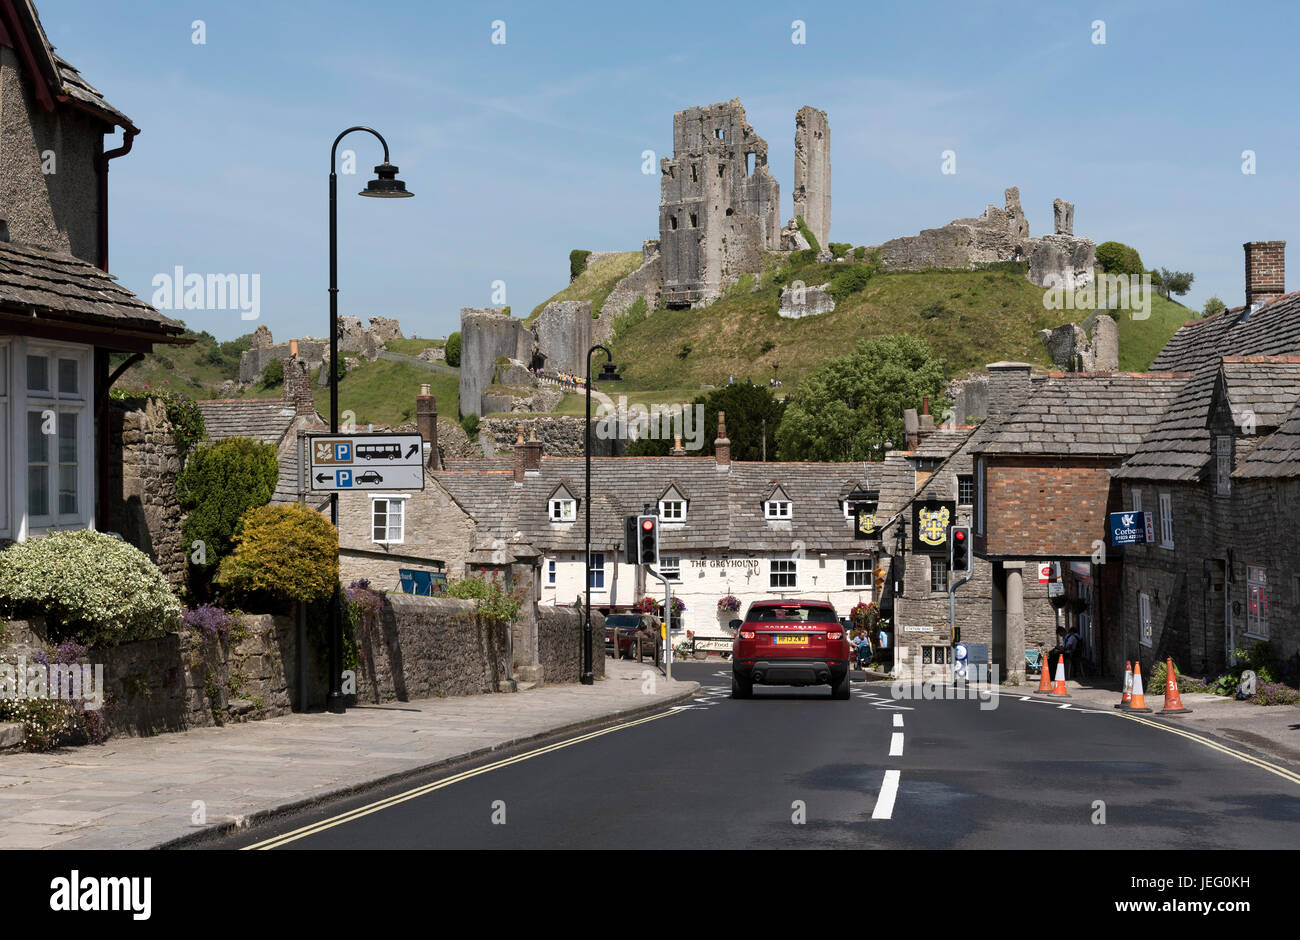 The main road through Corfe Castle a historic Dorset town with a ruined castle on the hill. June 2017 - Stock Image